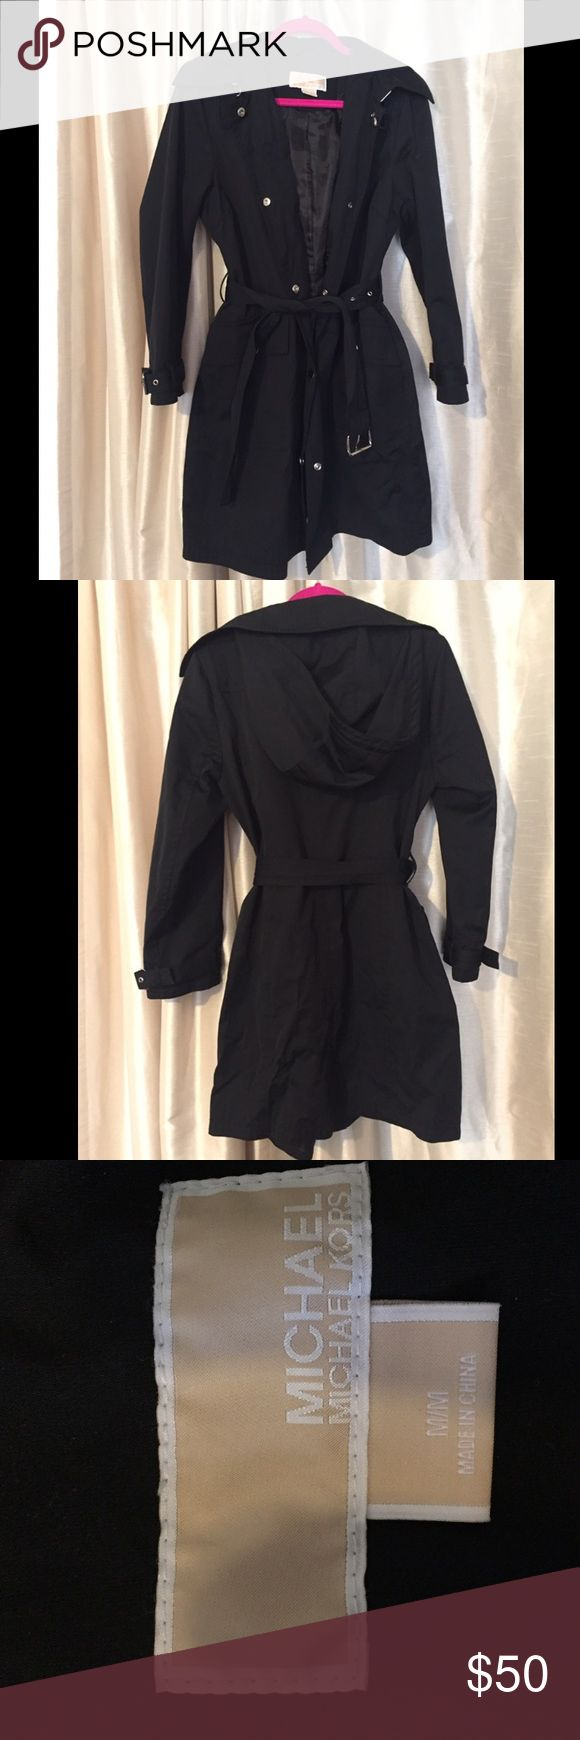 MICHAEL KORS black rain coat MK trench rain coat, perfect for the fall, comfy and goes with everything MICHAEL Michael Kors Jackets & Coats Trench Coats